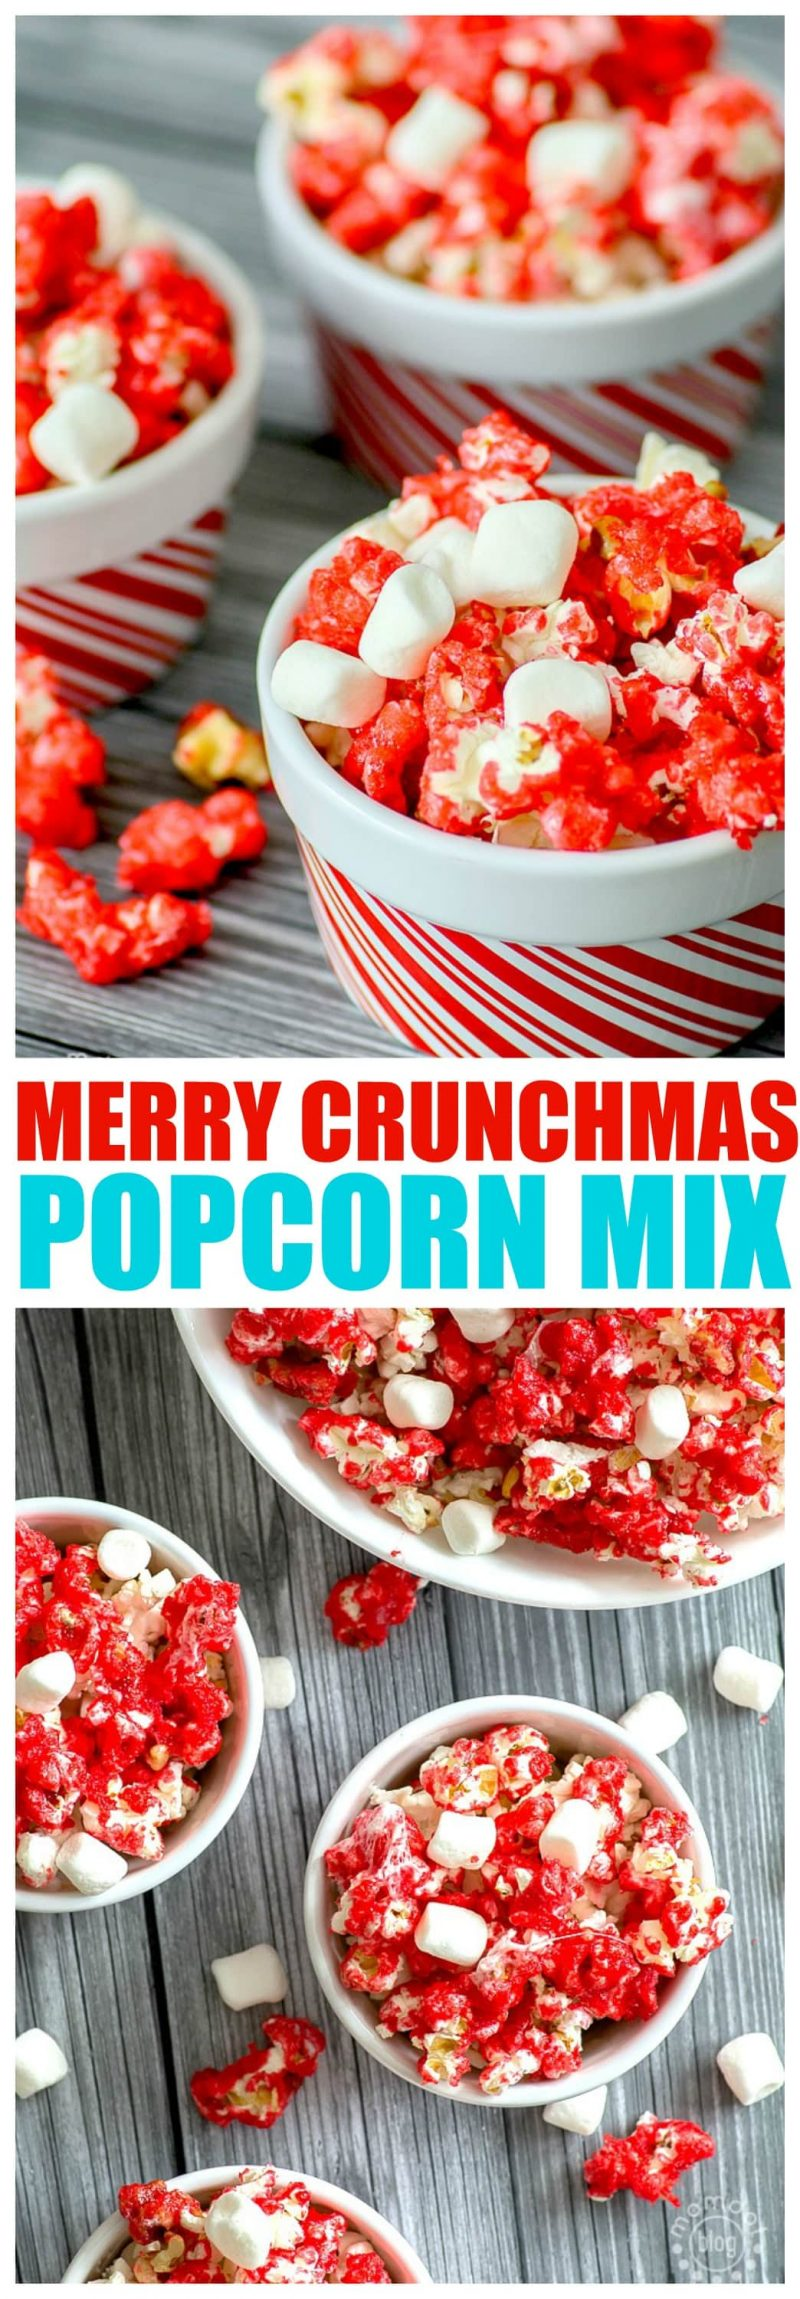 Merry Crunchmas PopCorn Recipe, 2 delicious ways to enjoy holiday popcorn with printable recipe, 10 minute